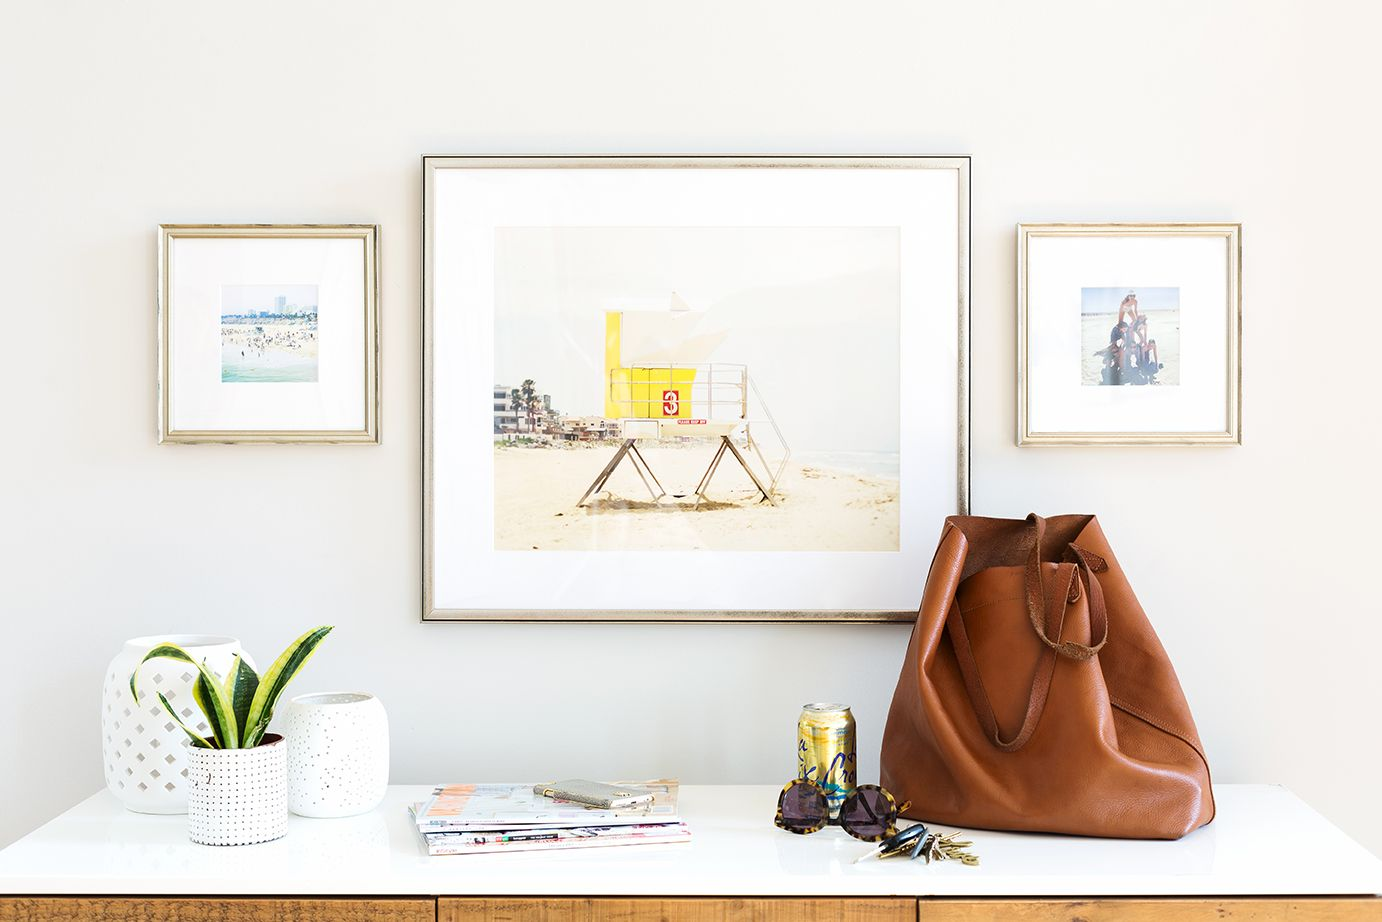 Art by @maddenphoto in our glossy pewter Ventura frame is balanced by two vacation Instagrams in our silver Newport frame